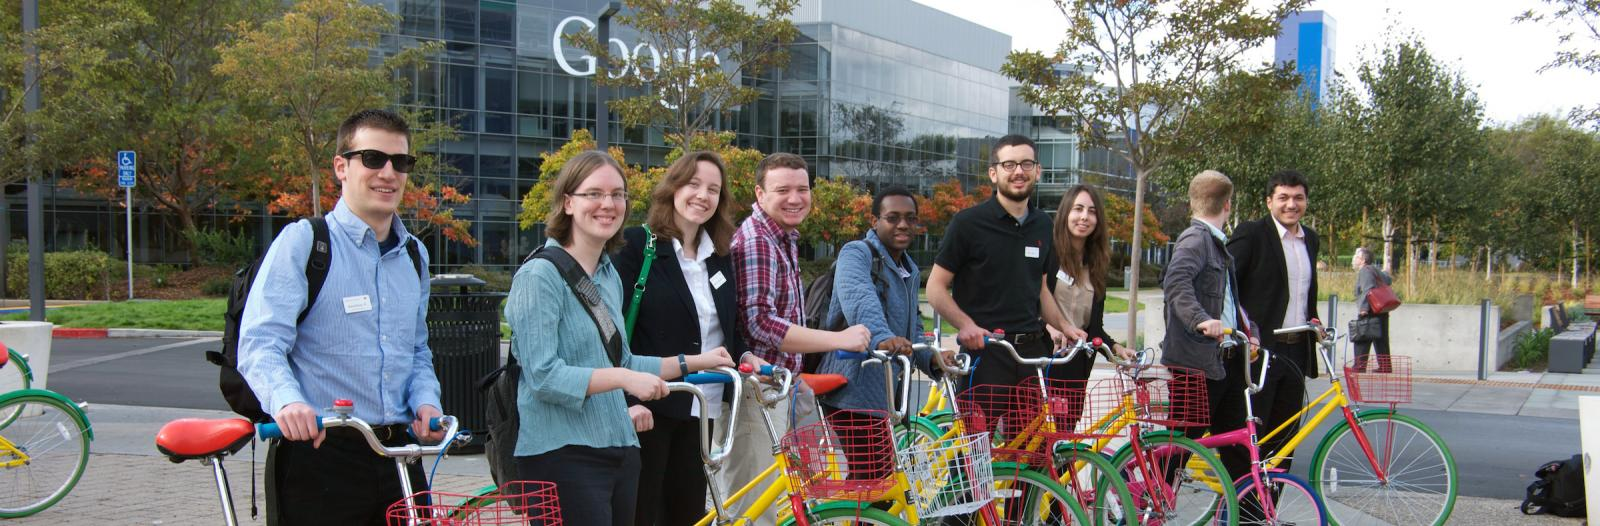 students with bikes at Google corporate headquarters